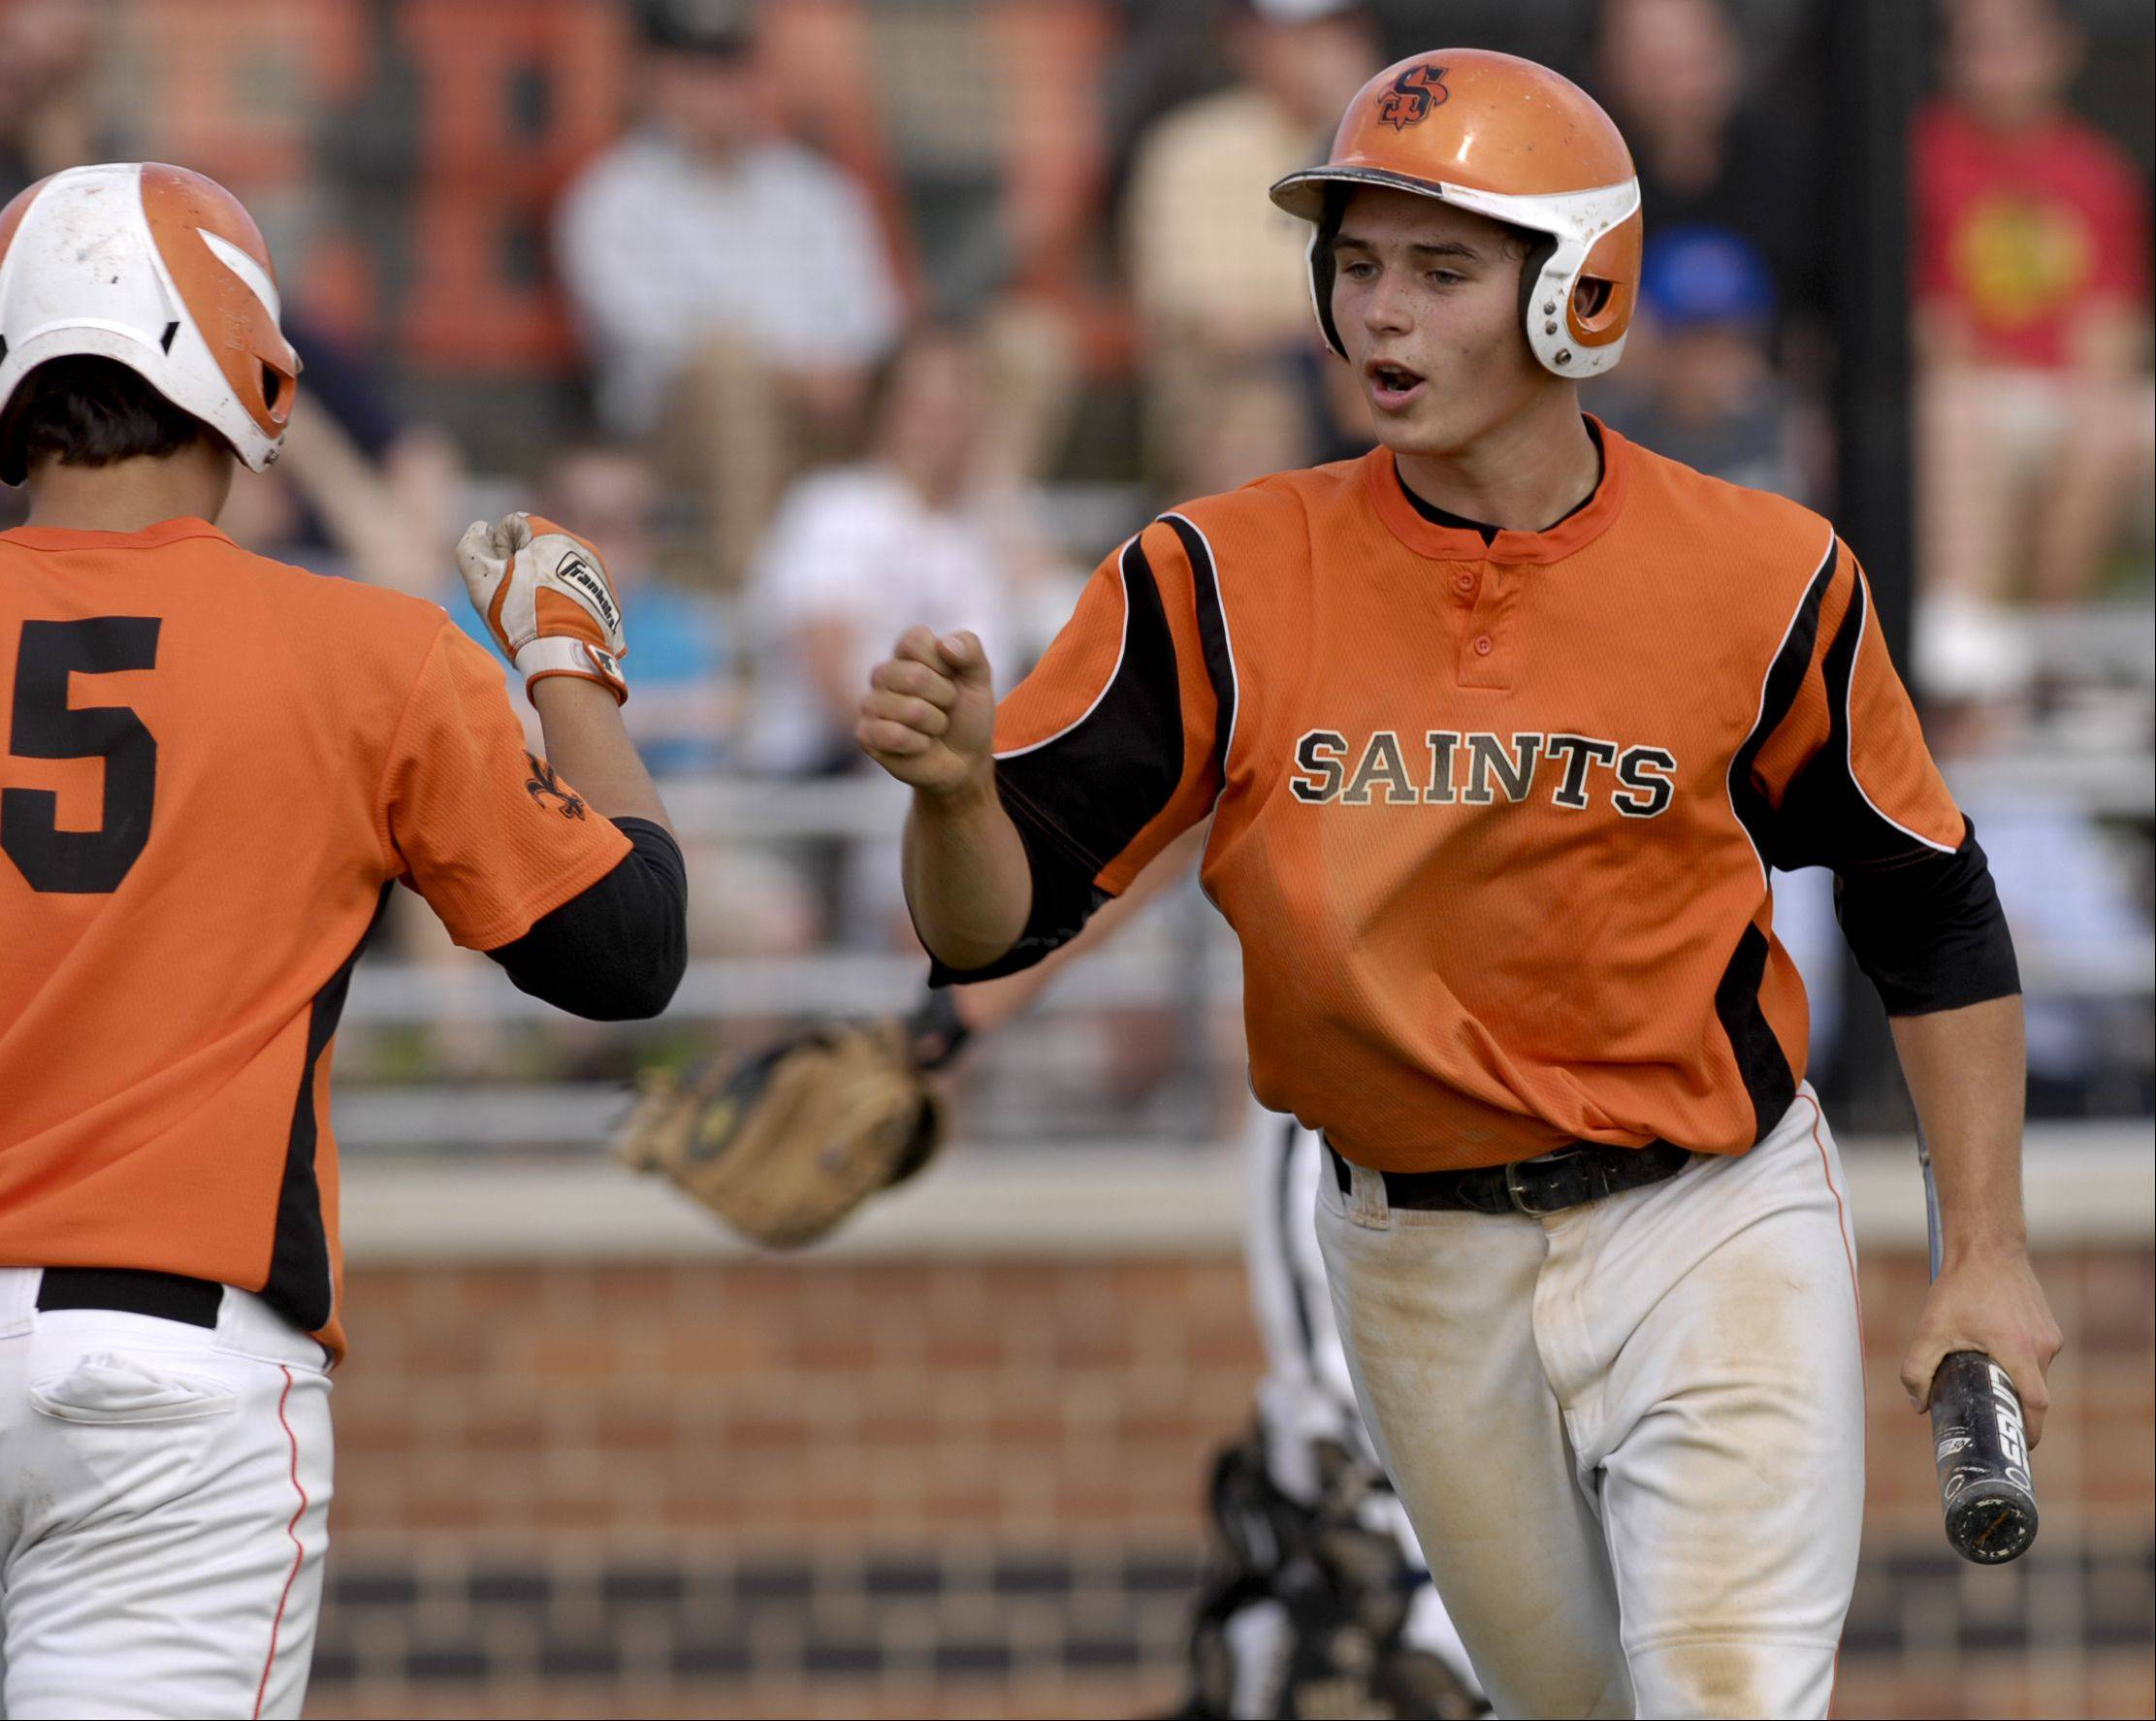 St. Charles East's Starai blanks Lake Park